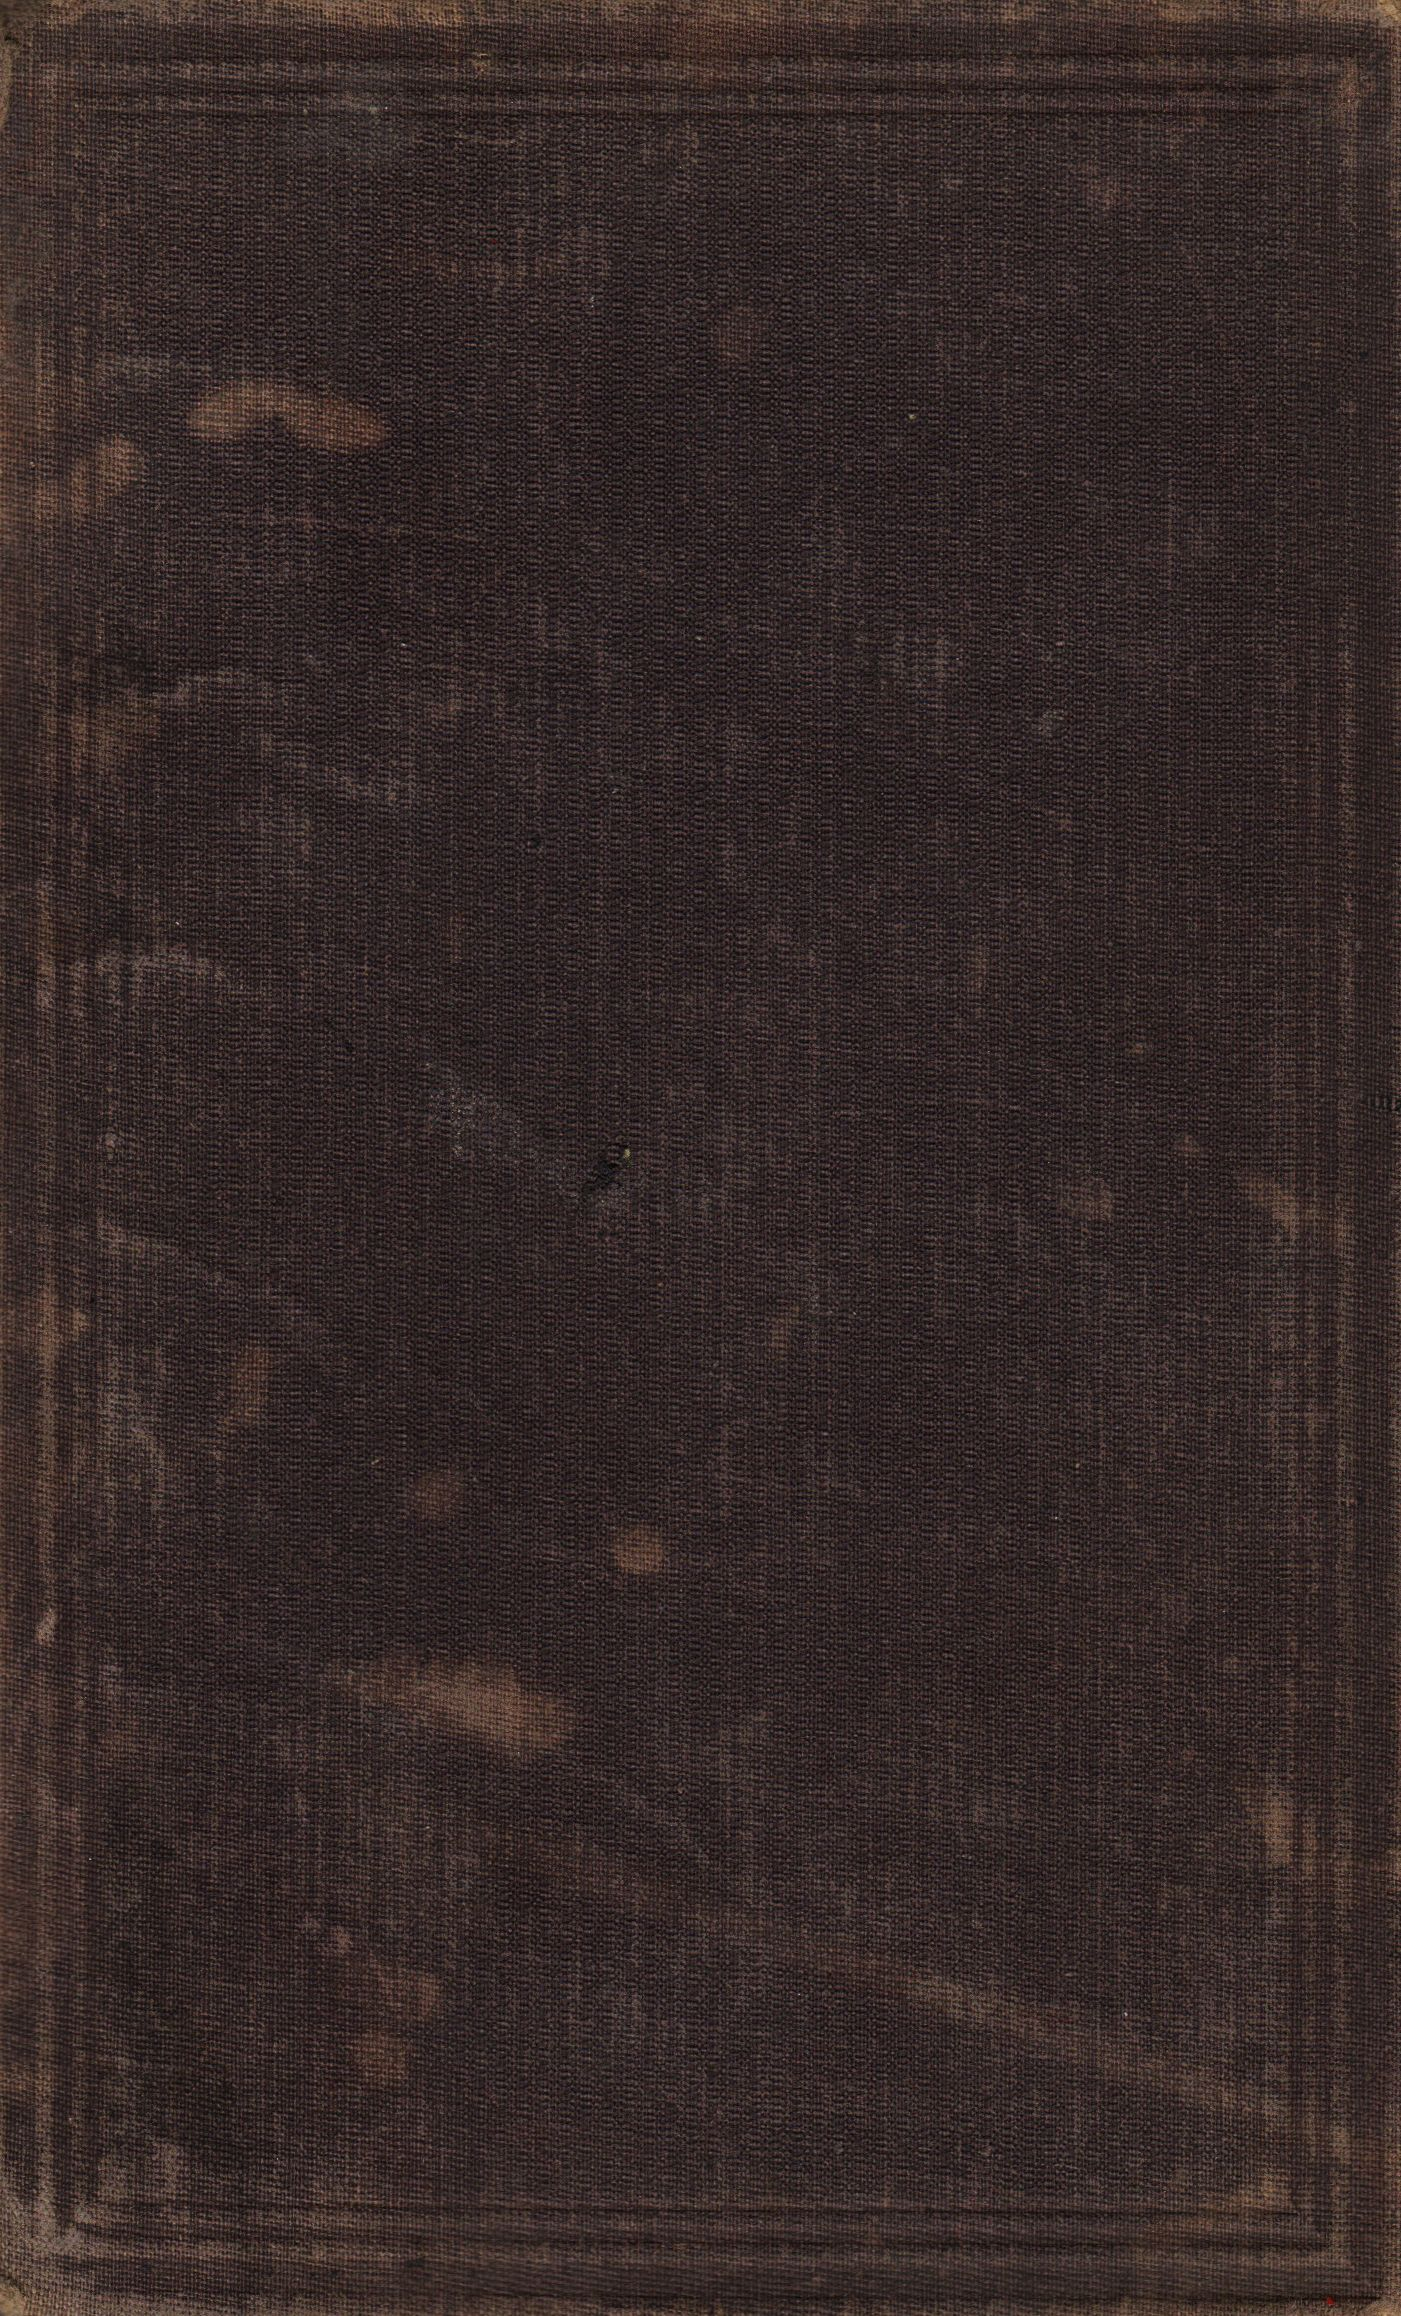 Free High Resolution Textures Lost And Taken 25 Deconstructed Vintage Book Textures Book Texture Vintage Book Texture